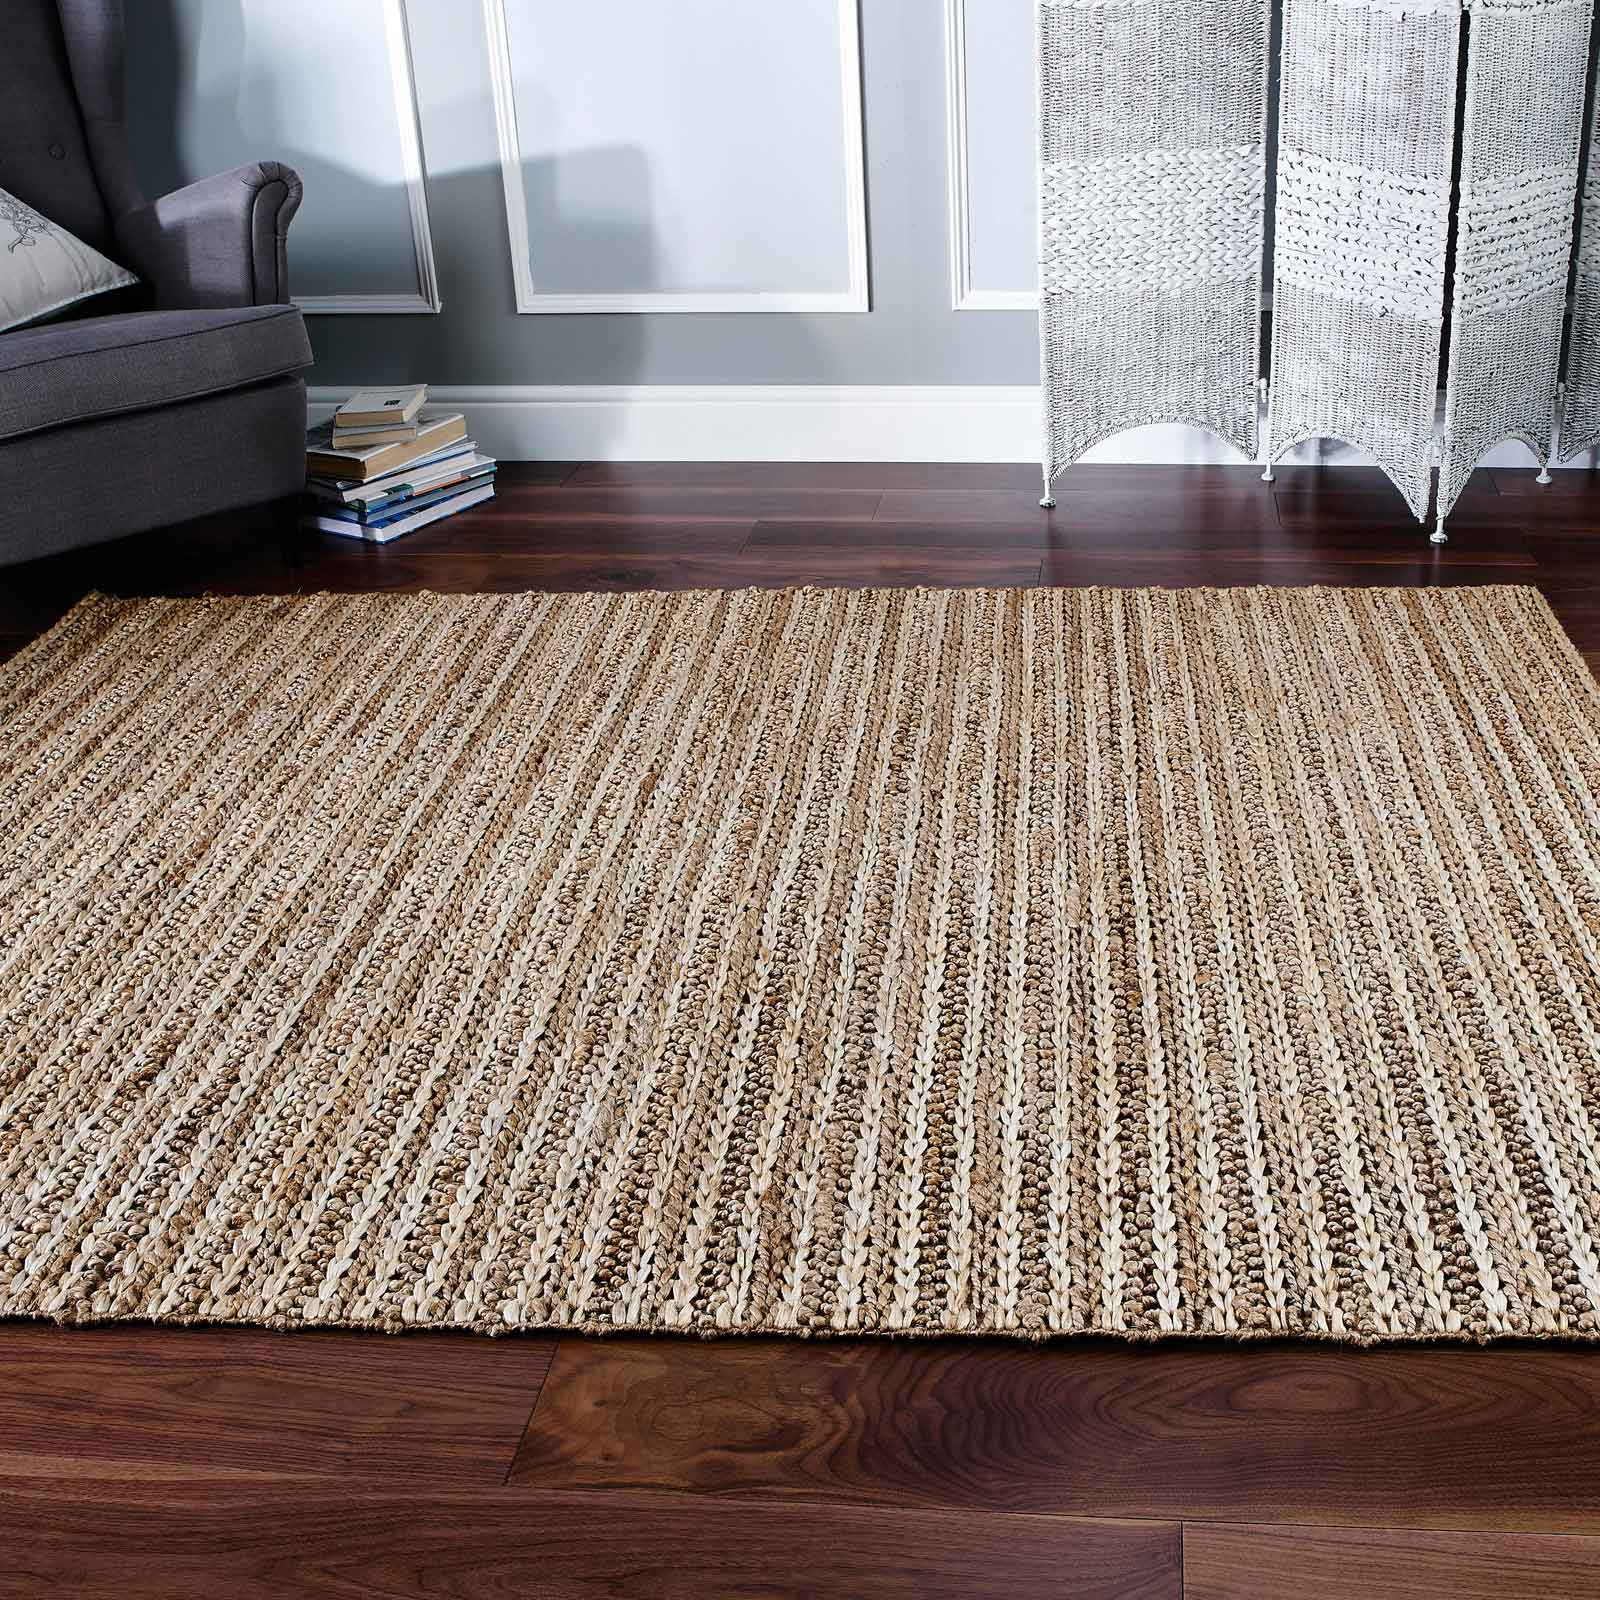 Kitchen Floor Mats Canadian Tire: Crestwood Jute Rugs In Natural